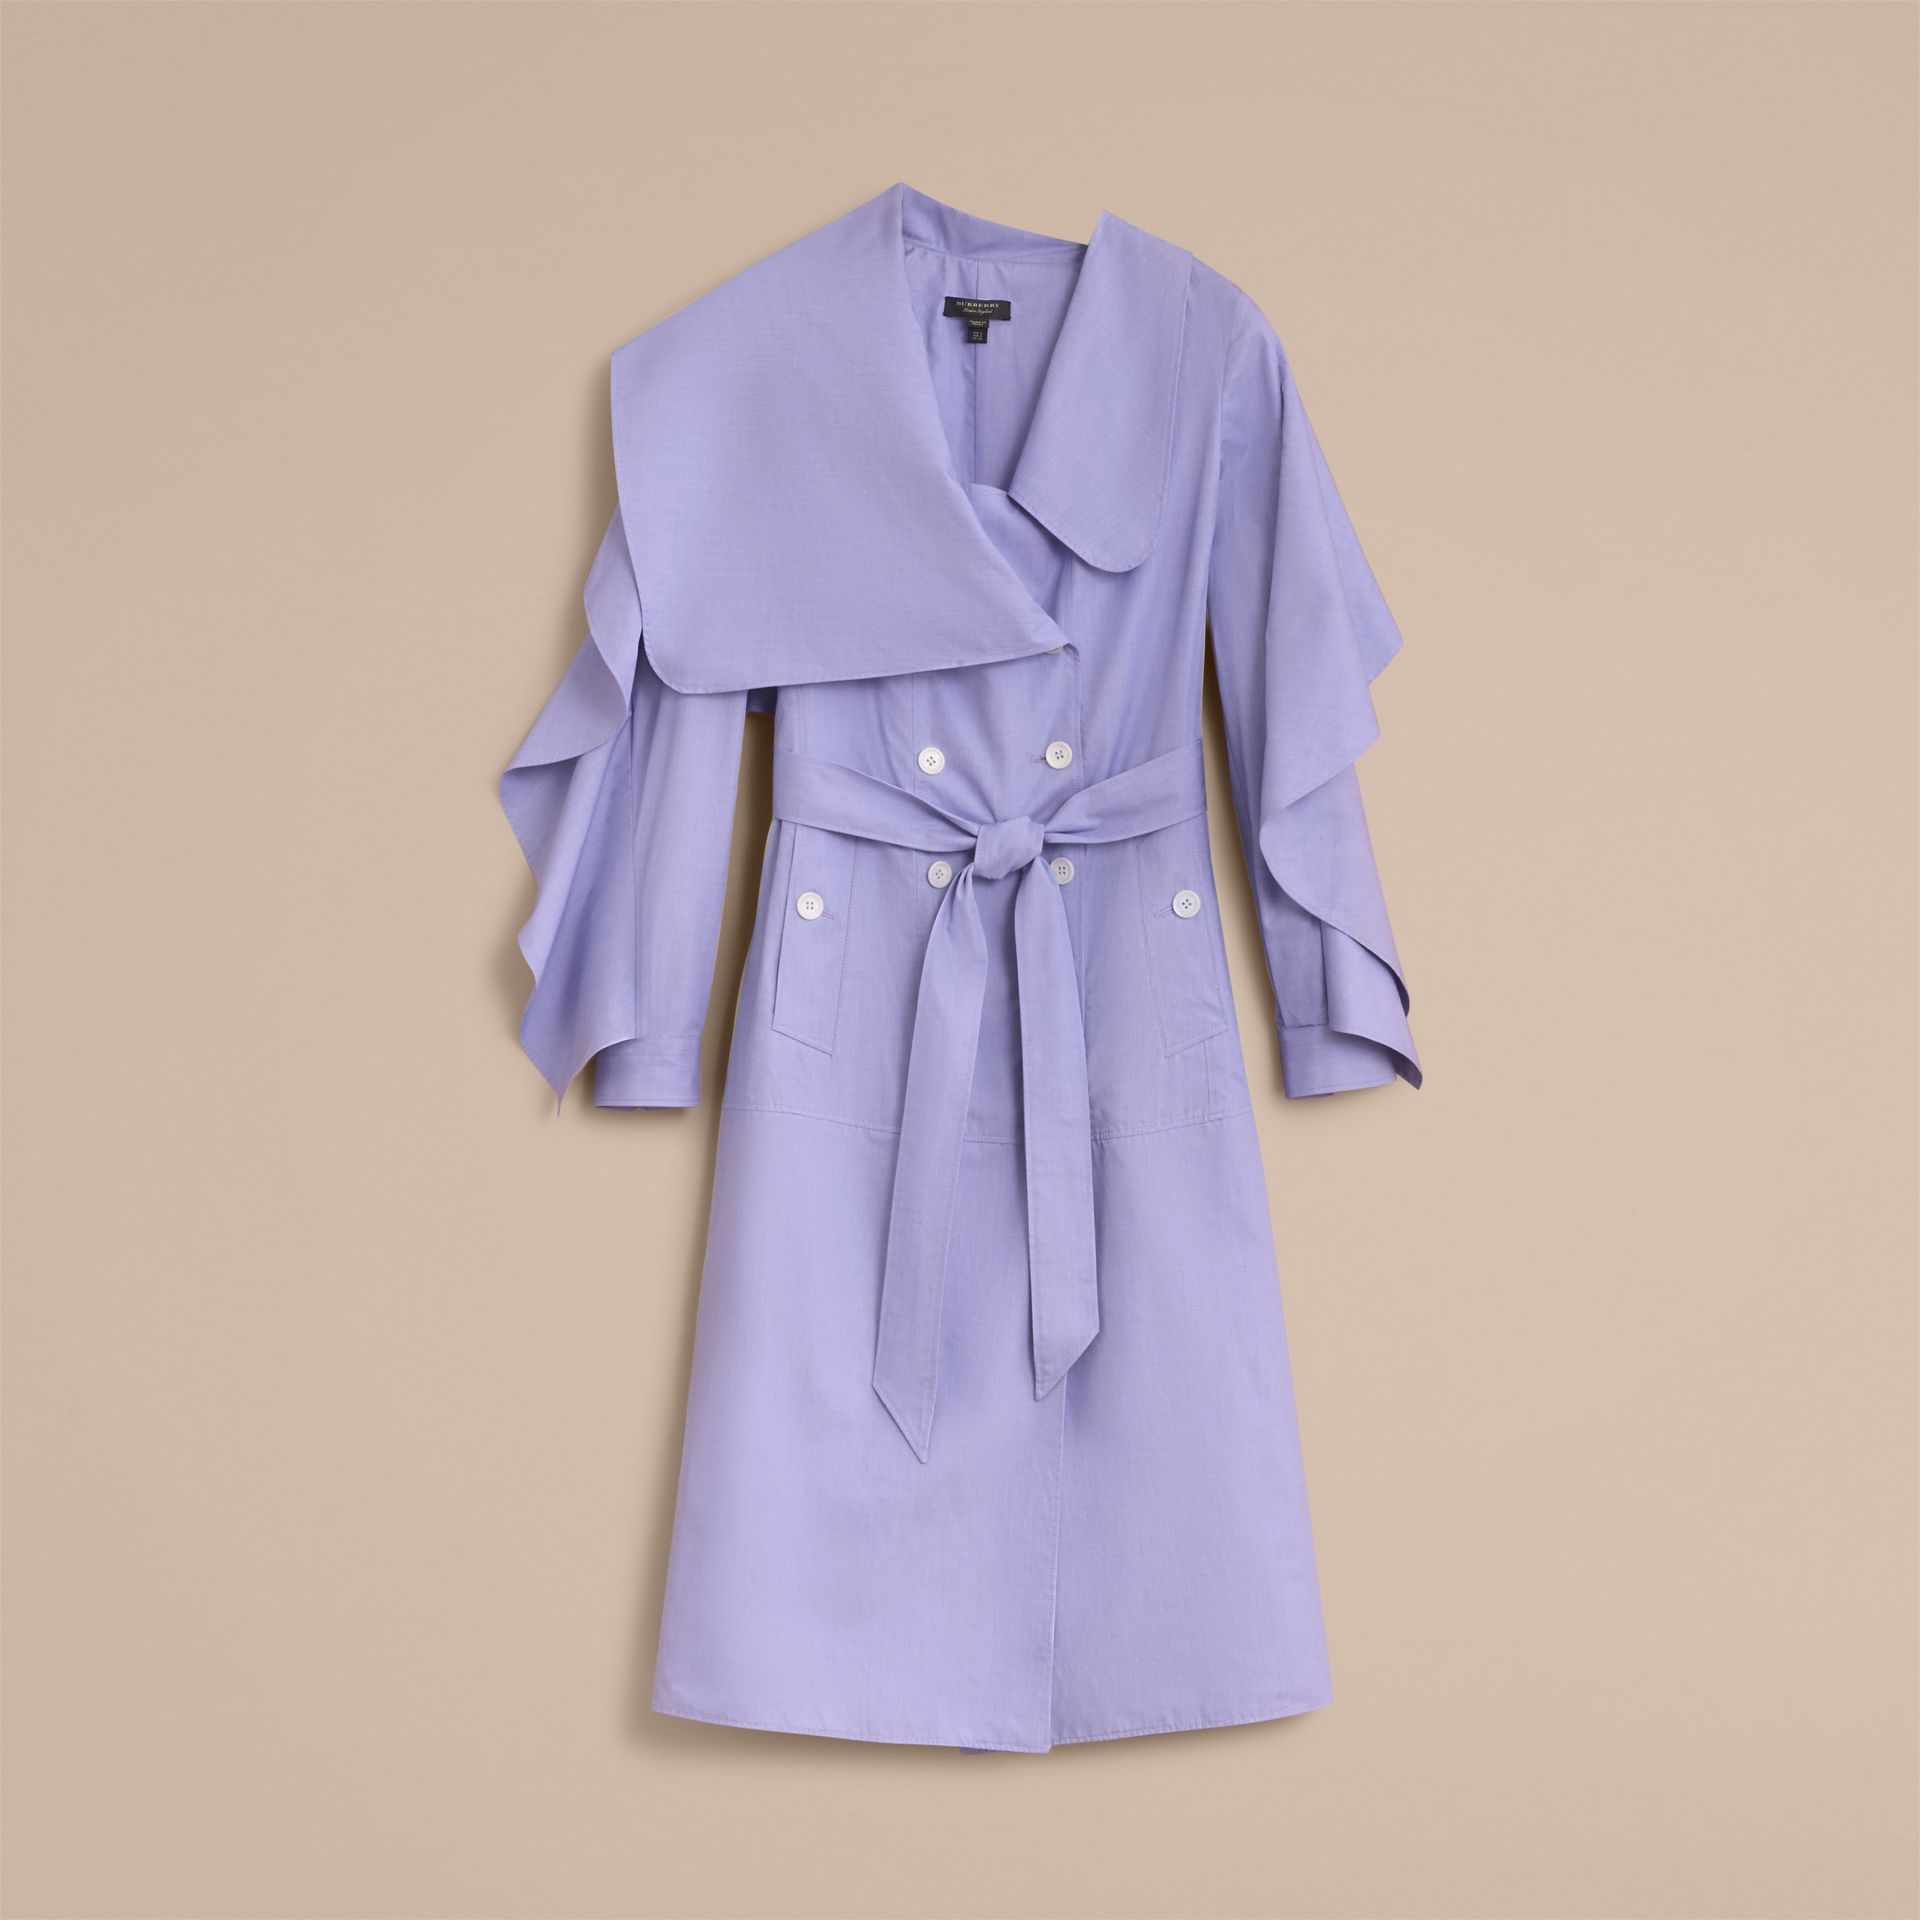 Cotton Chambray Sculptural Wrap Dress - Women | Burberry - gallery image 4